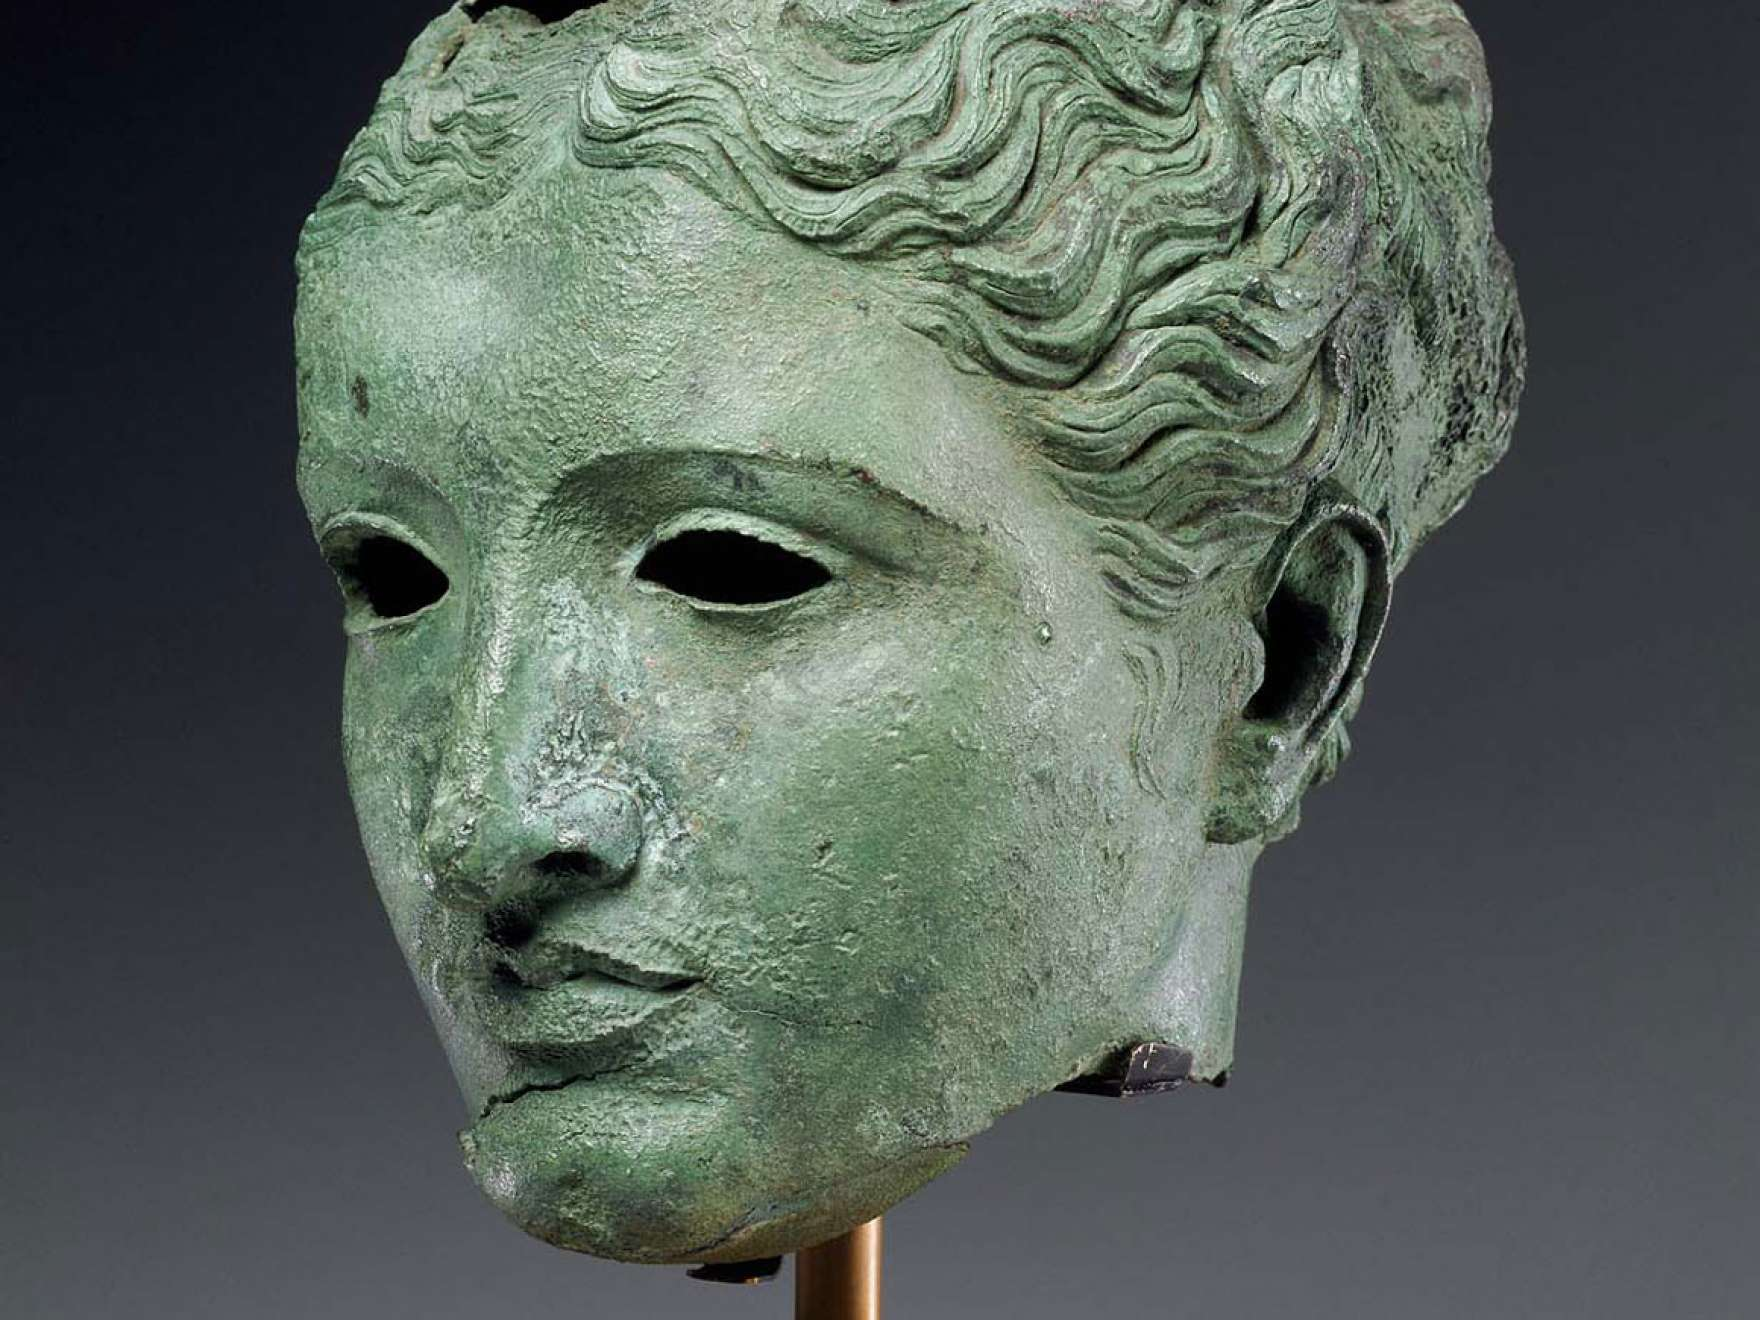 Bronze head of a Greek goddess or queen